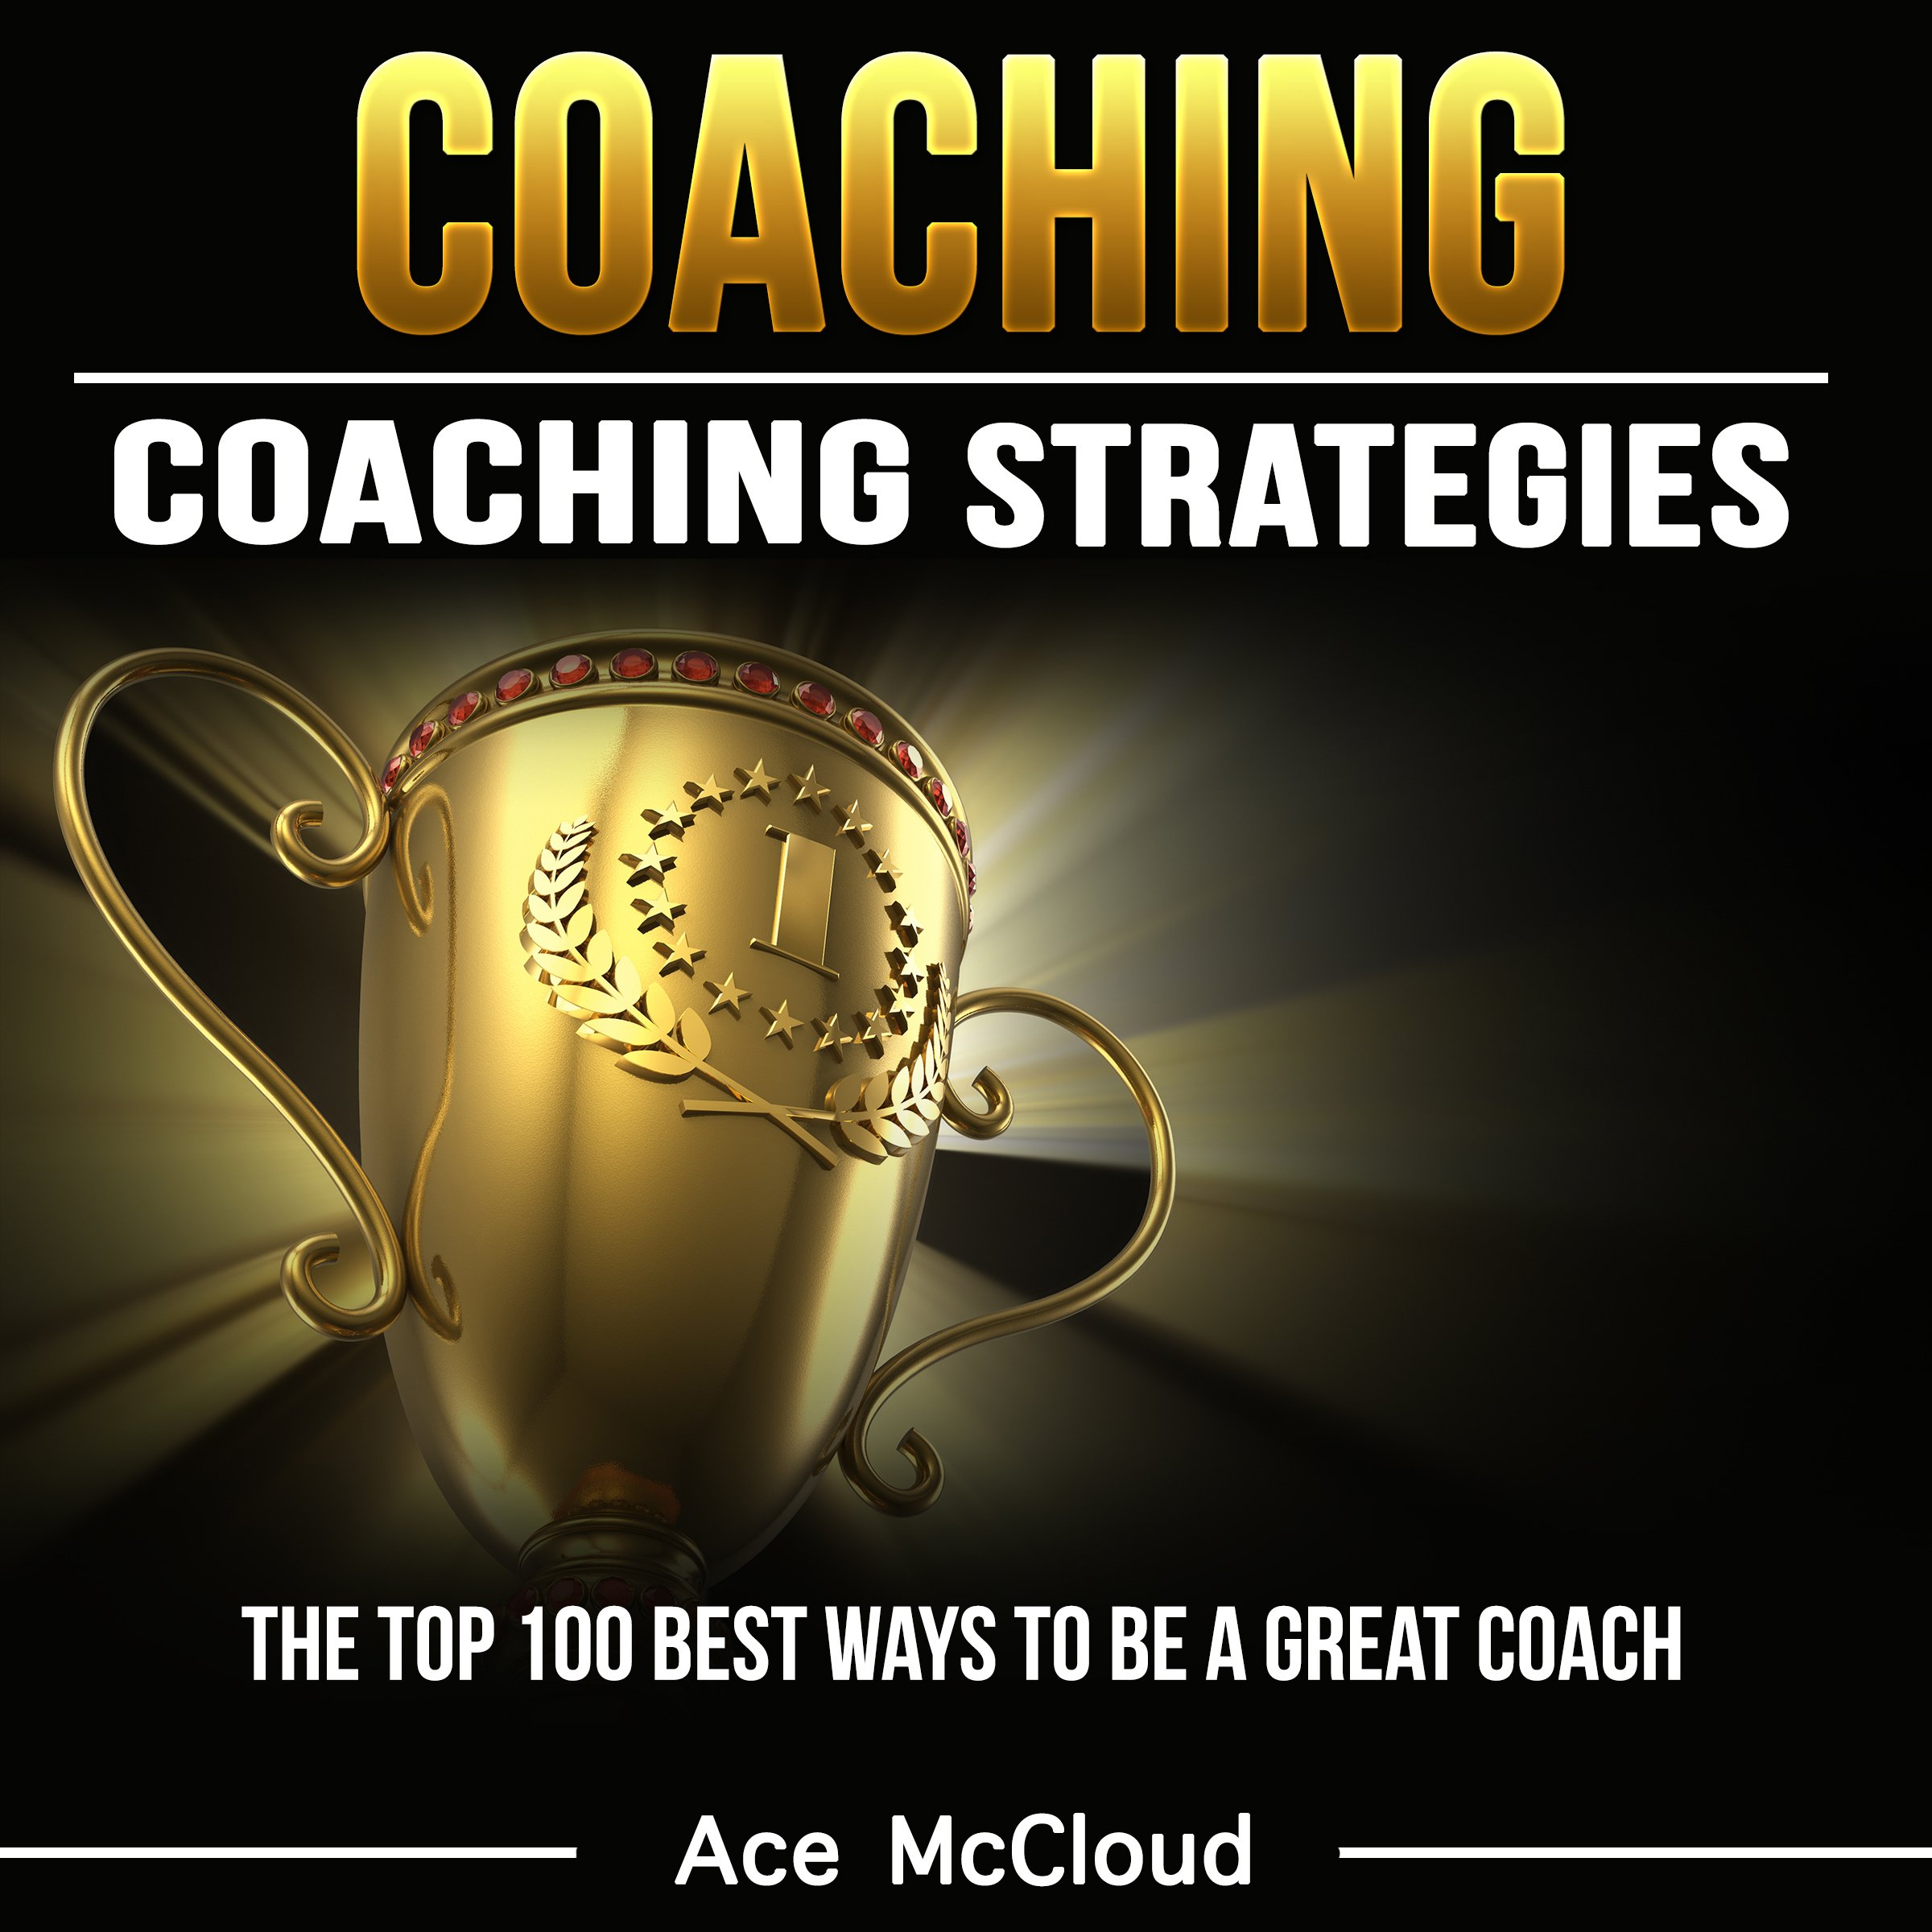 Image OfCoaching: Coaching Strategies: The Top 100 Best Ways To Be A Great Coach